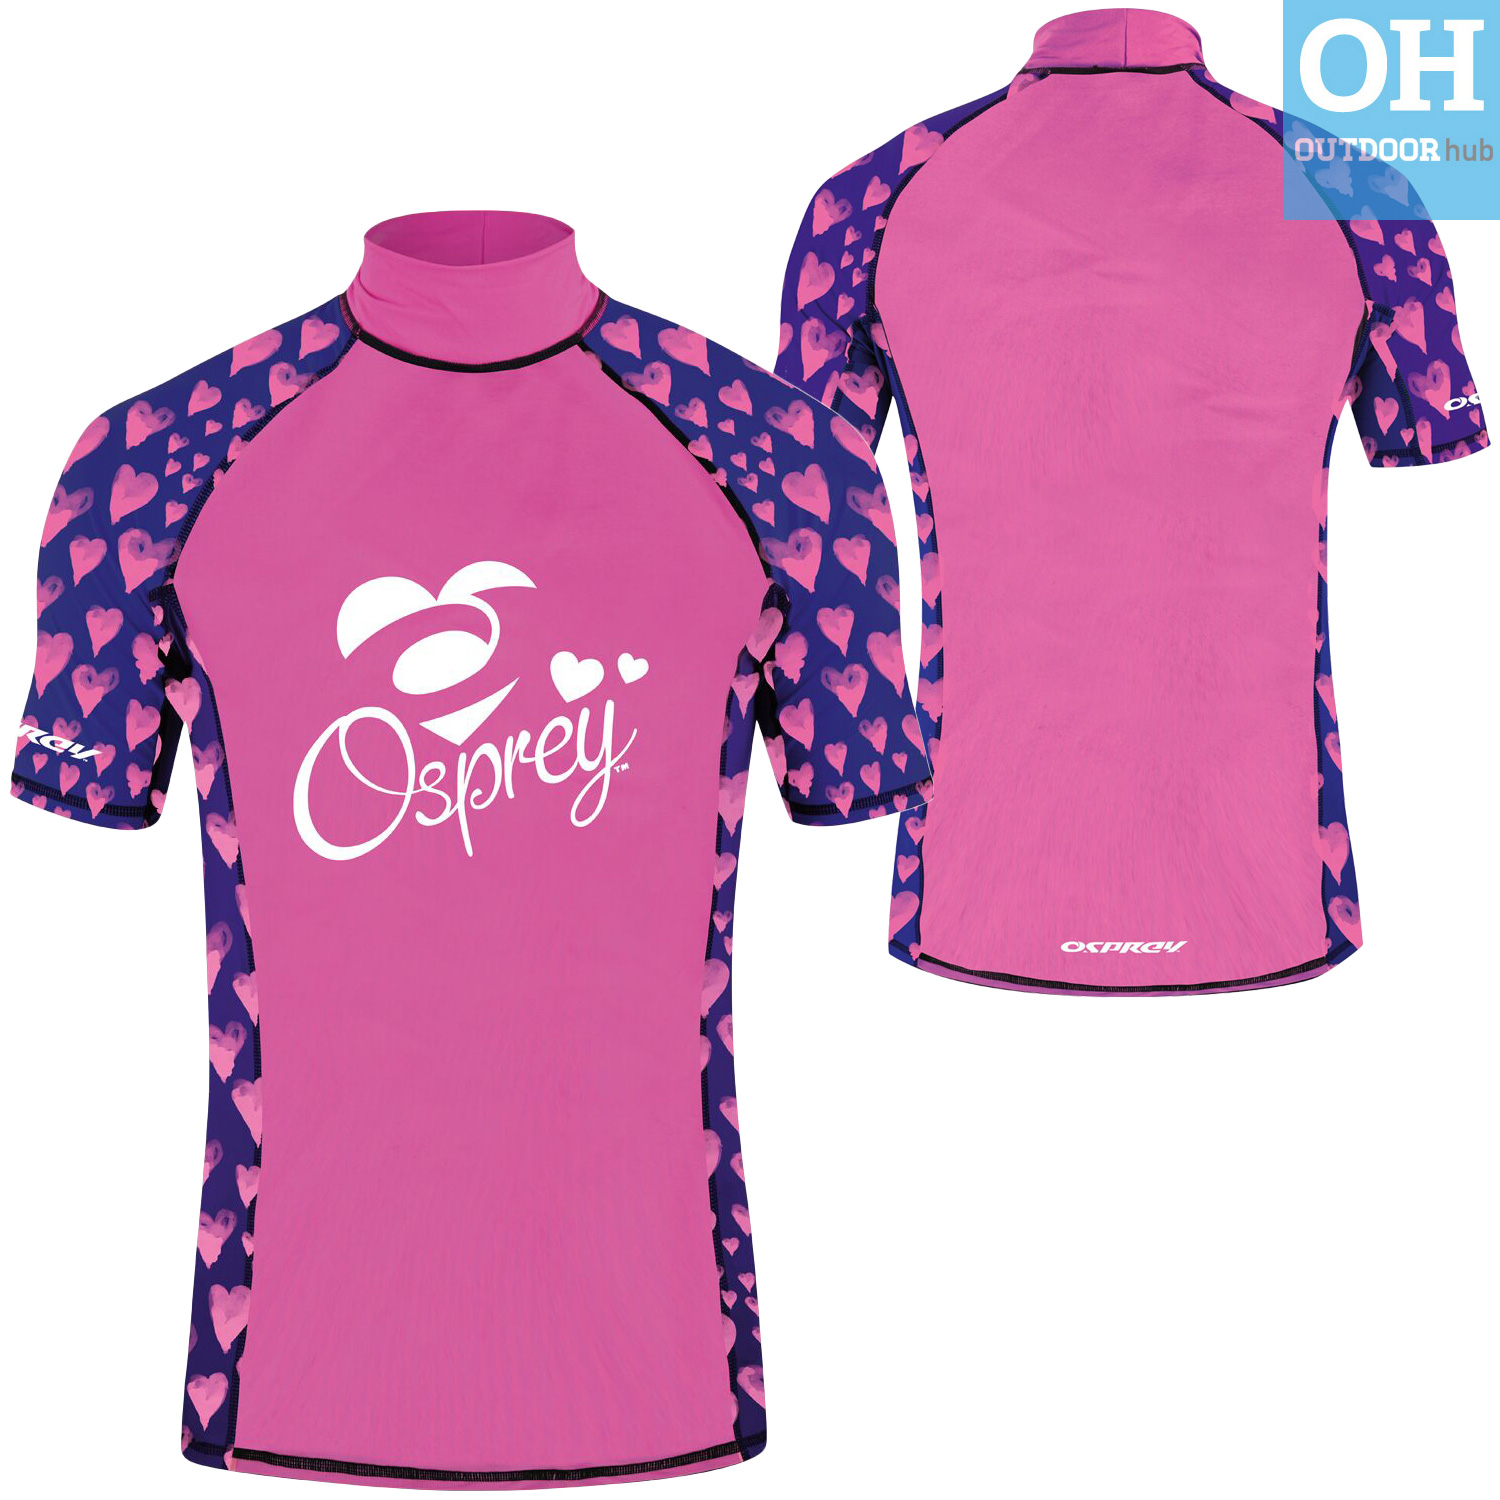 Osprey-Ladies-Short-Sleeve-Rash-Vest-Womens-Surf-T-Shirt-UV-50-Protection-Guard thumbnail 18